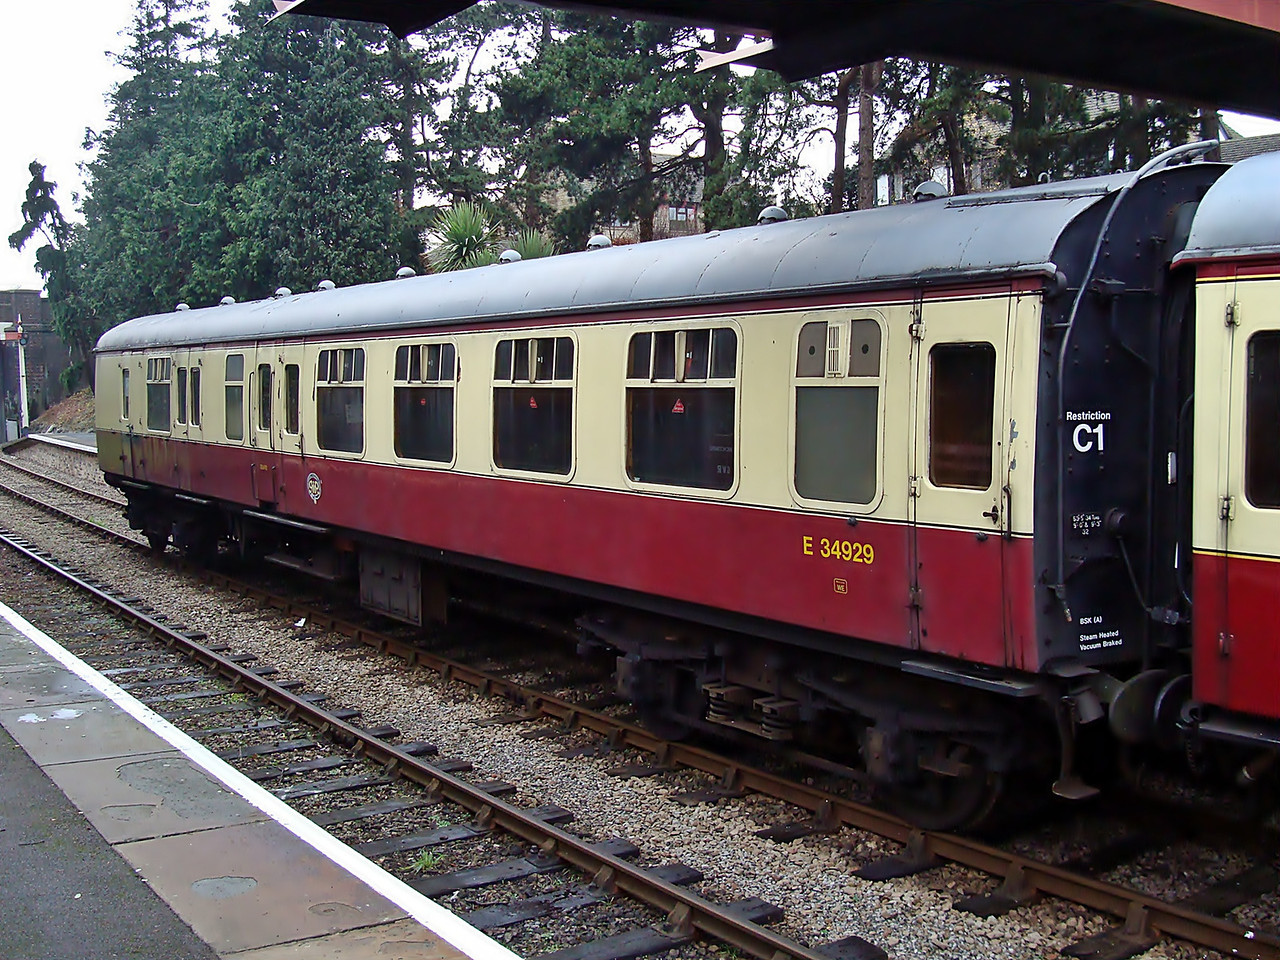 BR 34929 Mk 1 Brake Corridor Second 30,11,2008